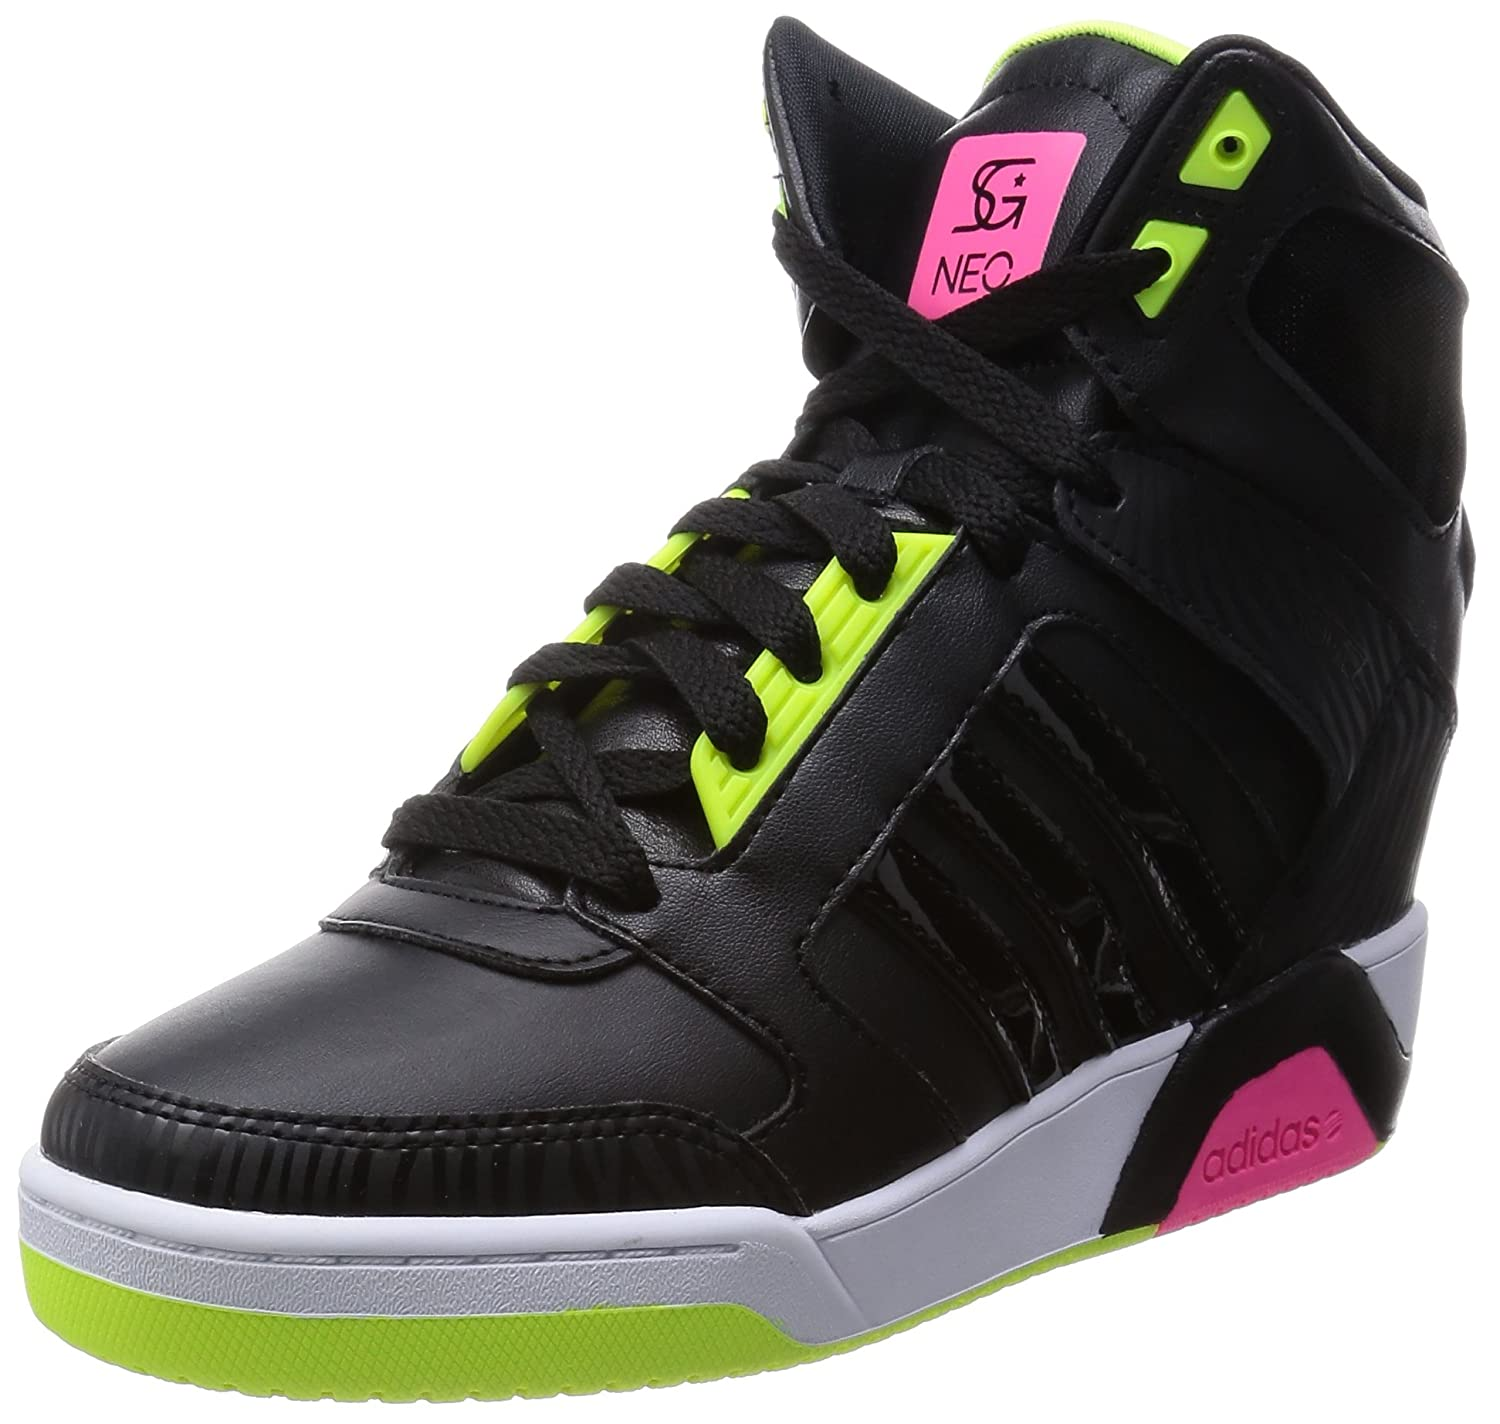 size 40 72796 7bfb5 adidas neo Women s Bb9Tis Wedge Sg Core Black, Core Black and Solar Pink  Sneakers - 7 UK  Buy Online at Low Prices in India - Amazon.in